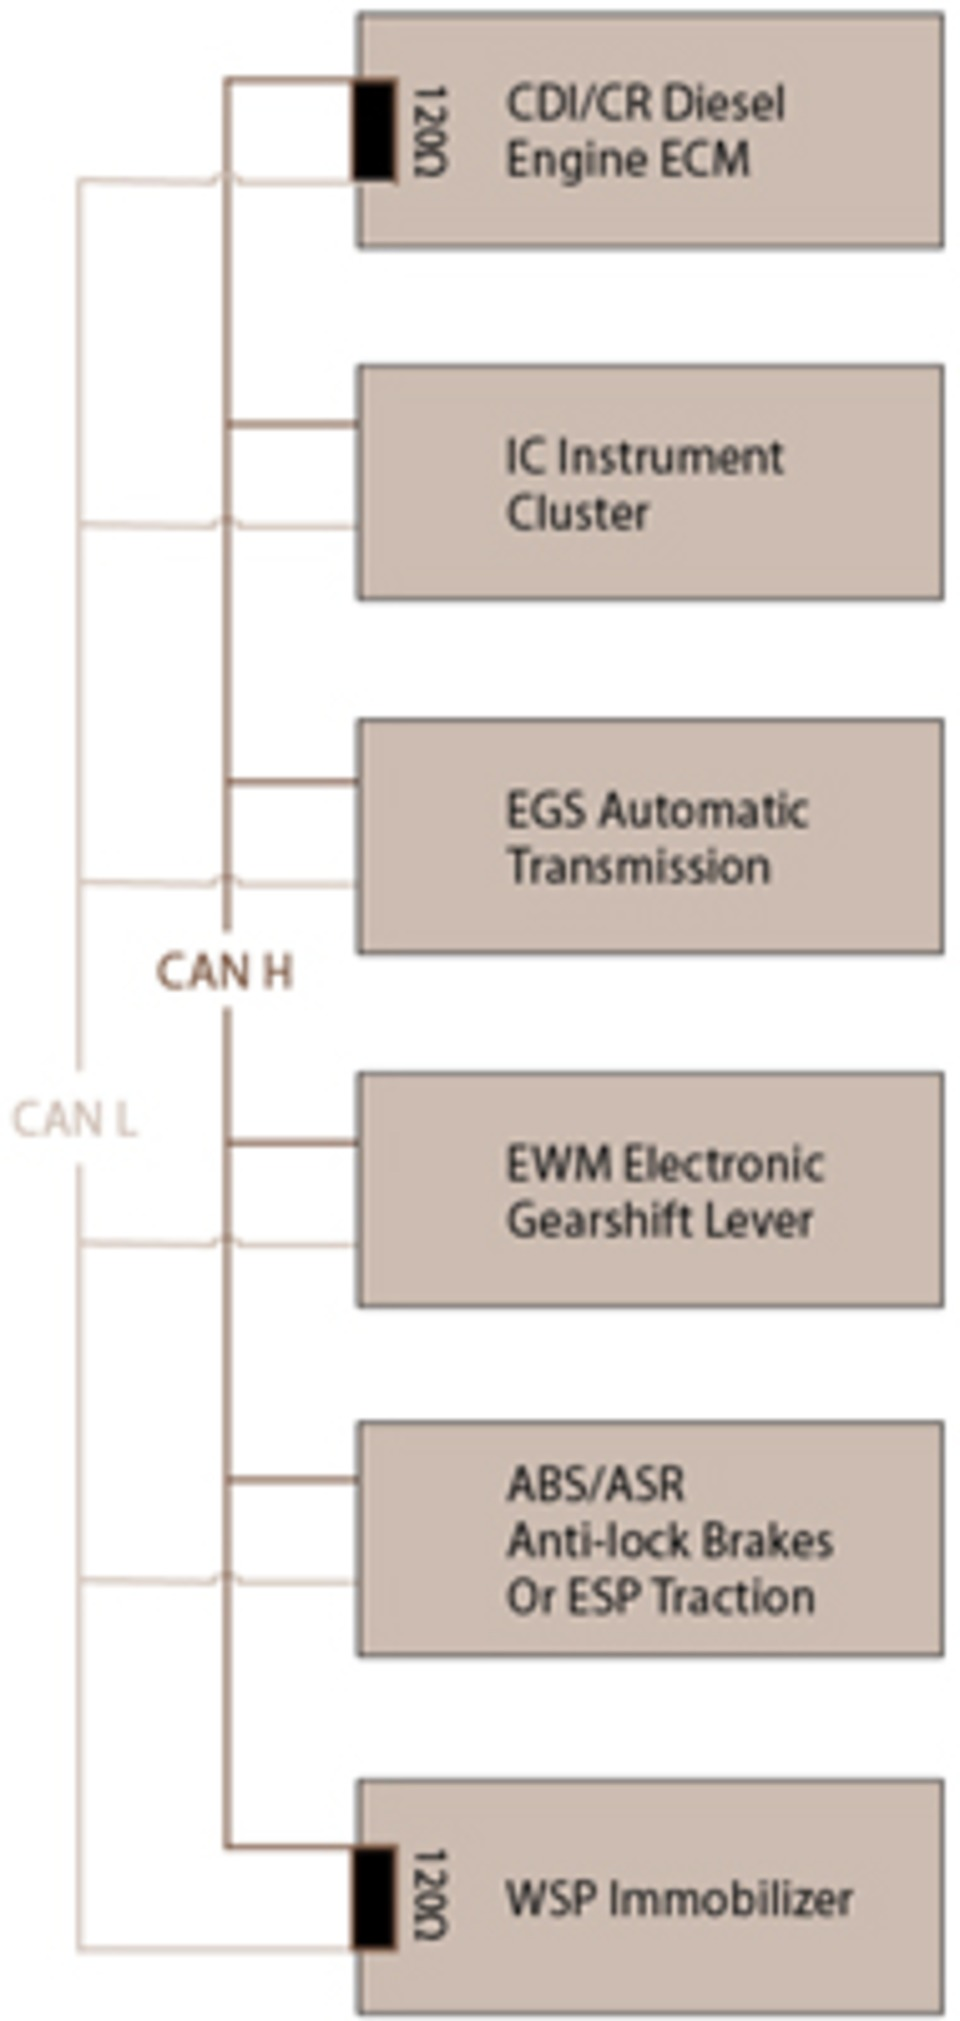 hight resolution of sprinter electrical systemssprinter wiring diagrams tcm 6